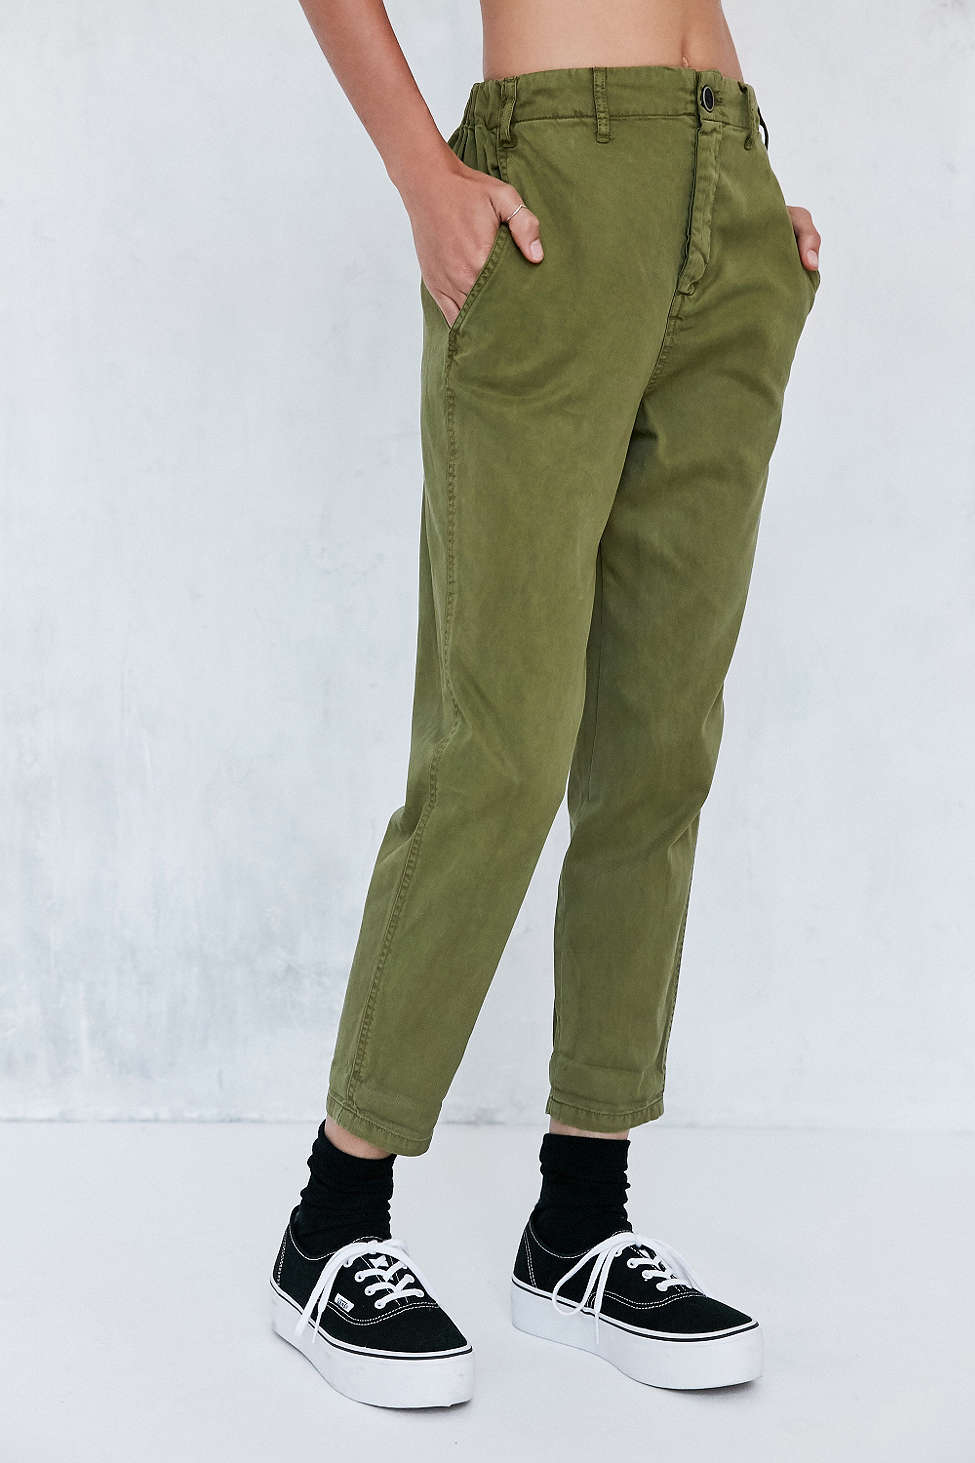 One of my good friends asked me about where she could find good cargos this season and I was stumped! But then I stumbled upon this awesome pair + can't wait to show her!